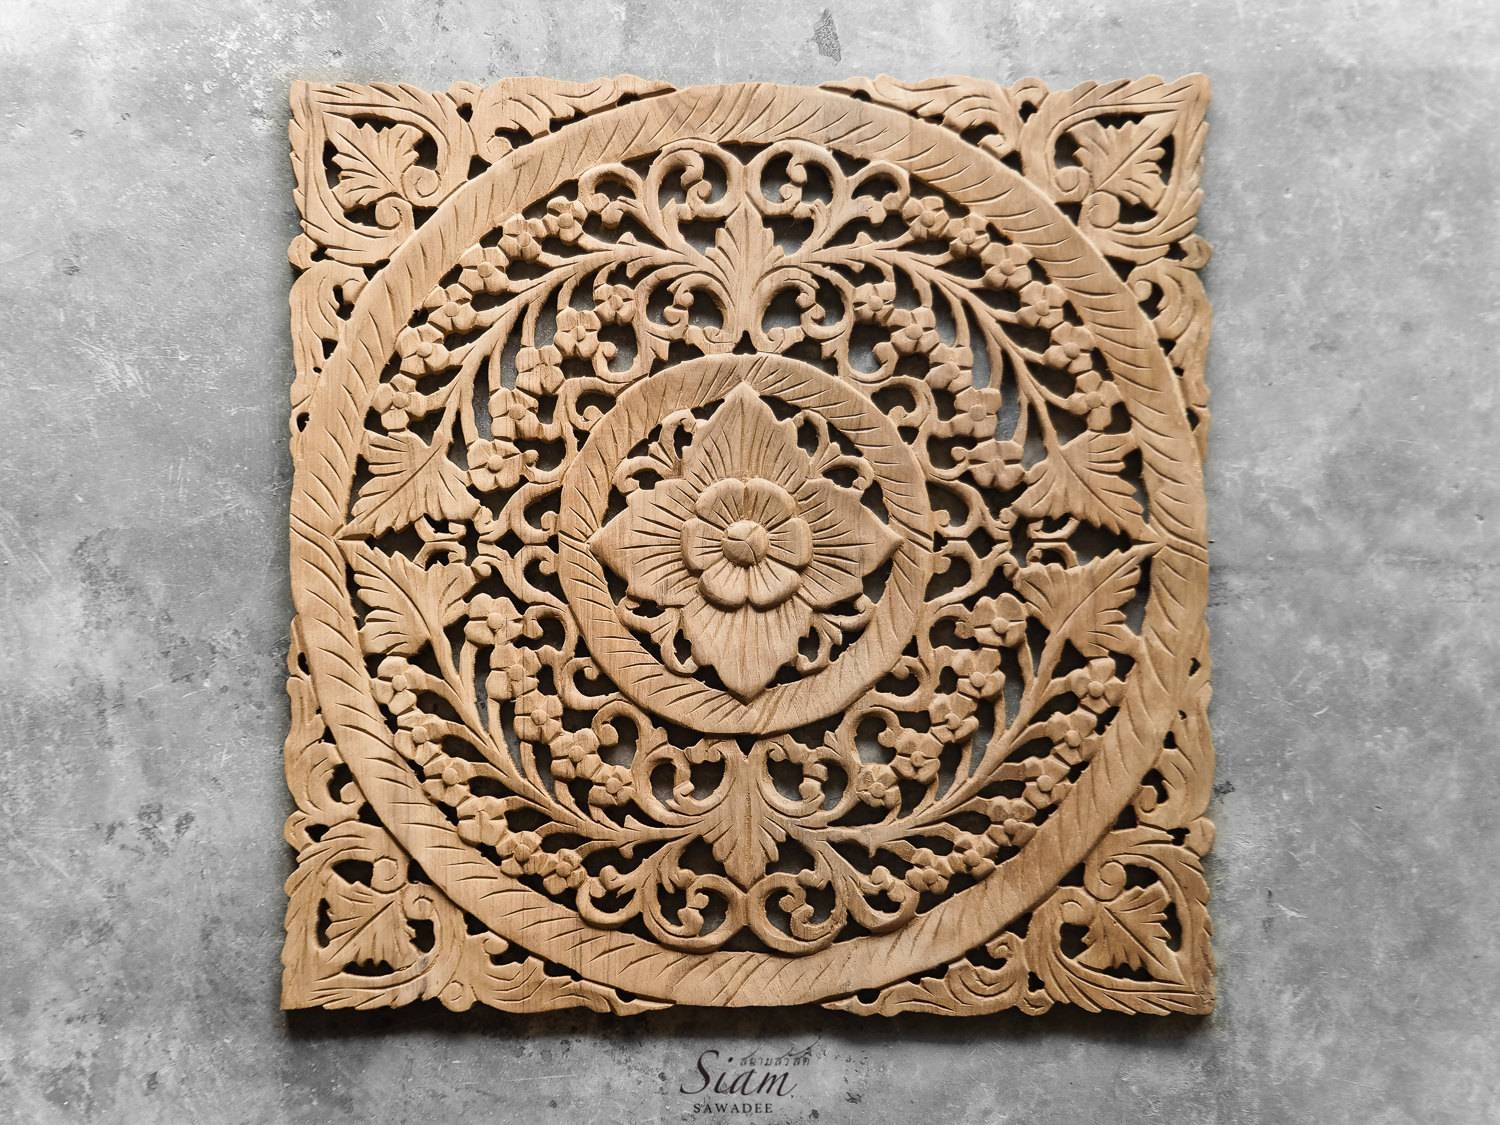 Carved Wooden Lotus Wall Hanging Panel – Siam Sawadee Regarding Most Recent Wood Carved Wall Art Panels (View 15 of 25)